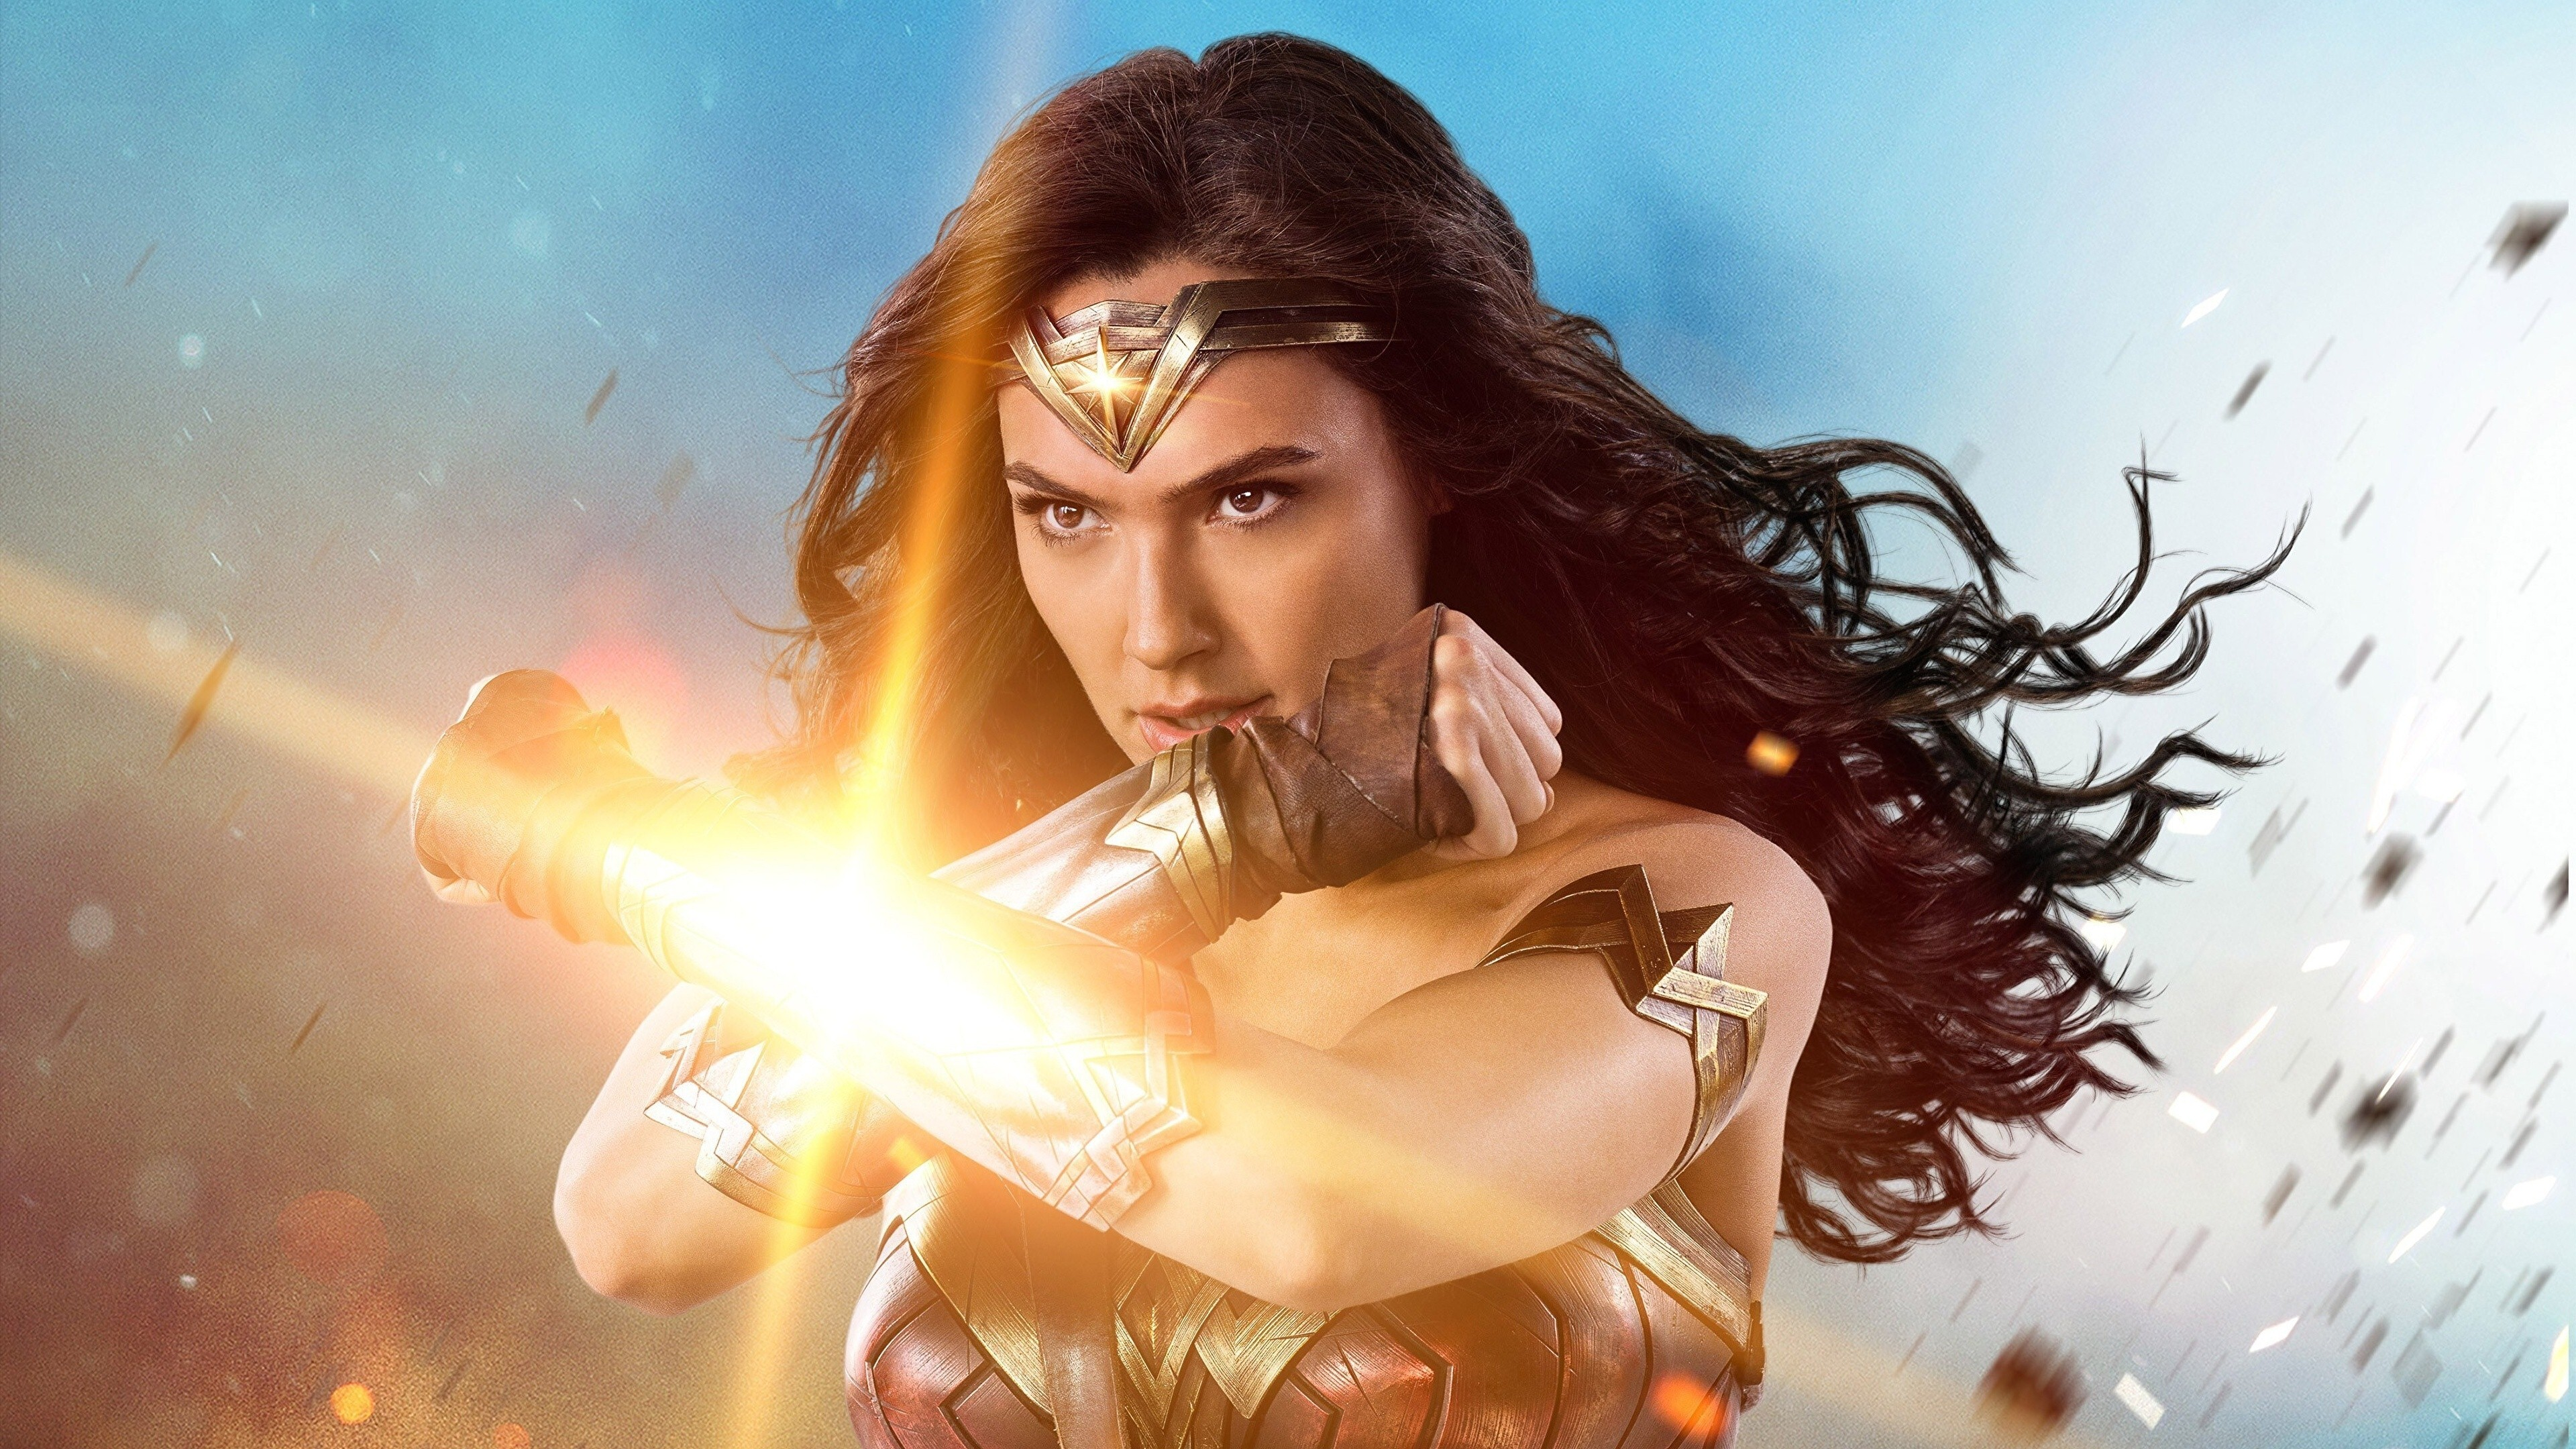 Wallpaper Wonder Woman 2017 Movies 6723: Wonder Woman 4K Wallpaper